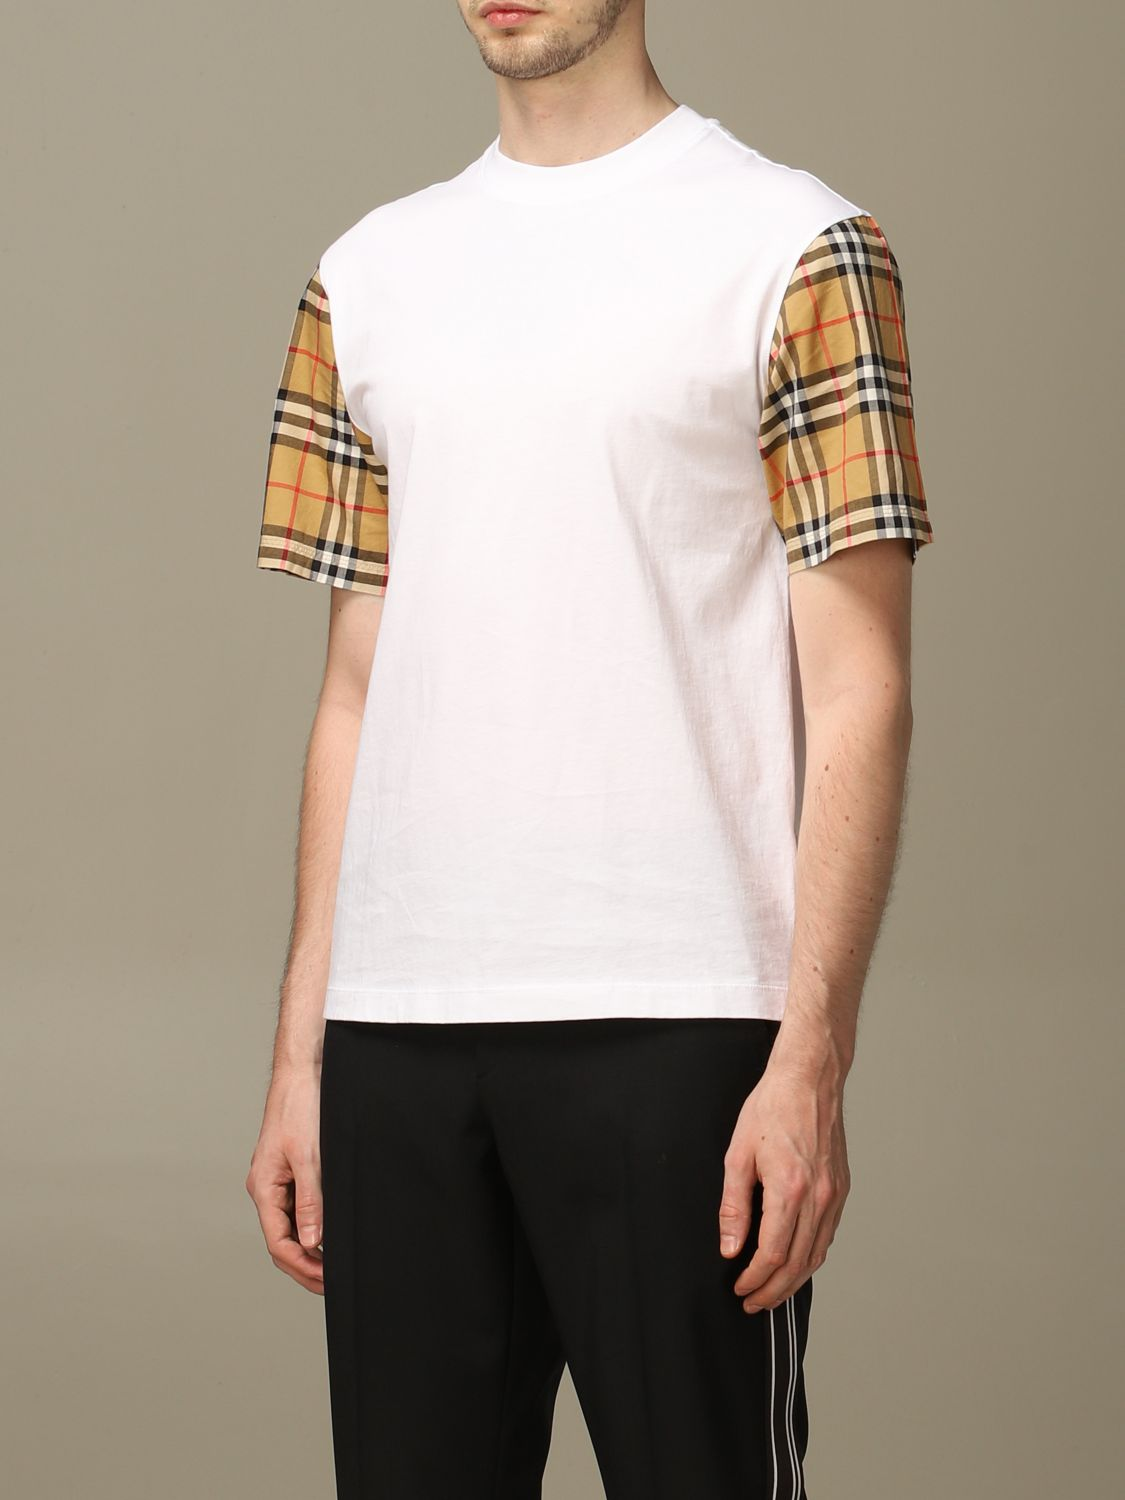 T-shirt Burberry: Burberry stretch cotton T-shirt with check sleeves white 3